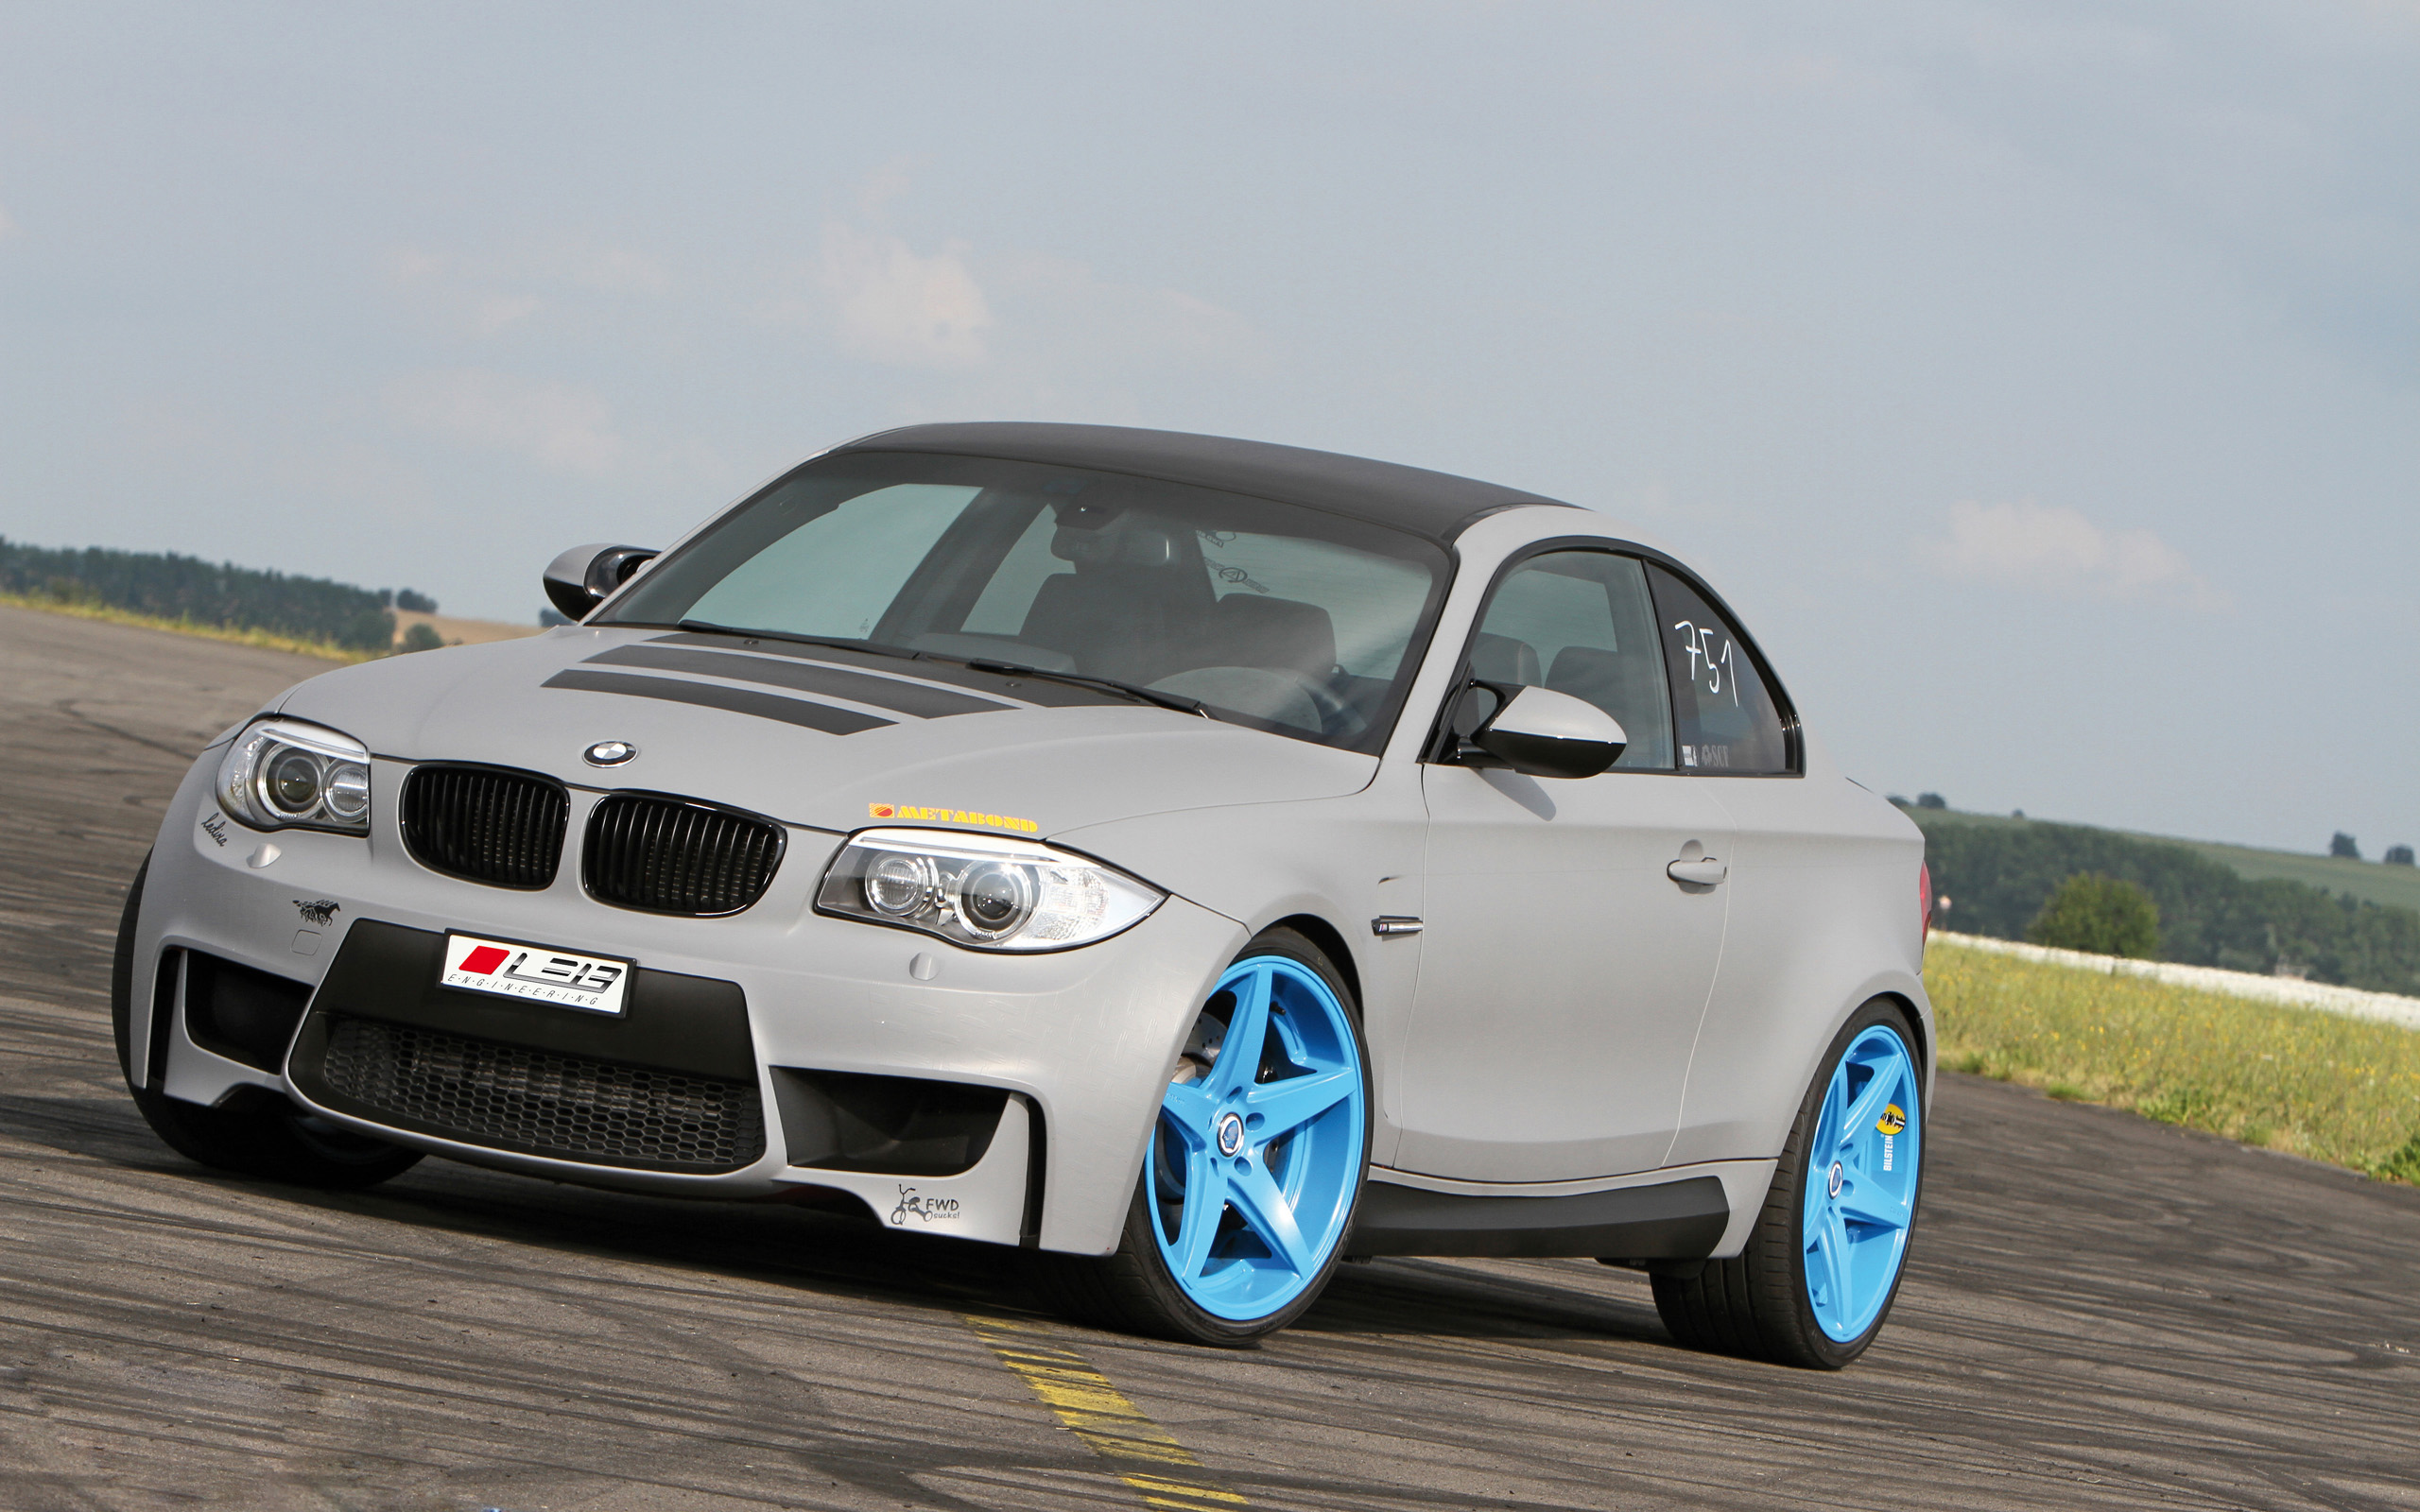 2013 leib engineering bmw 1er m coupe tuning wallpaper. Black Bedroom Furniture Sets. Home Design Ideas